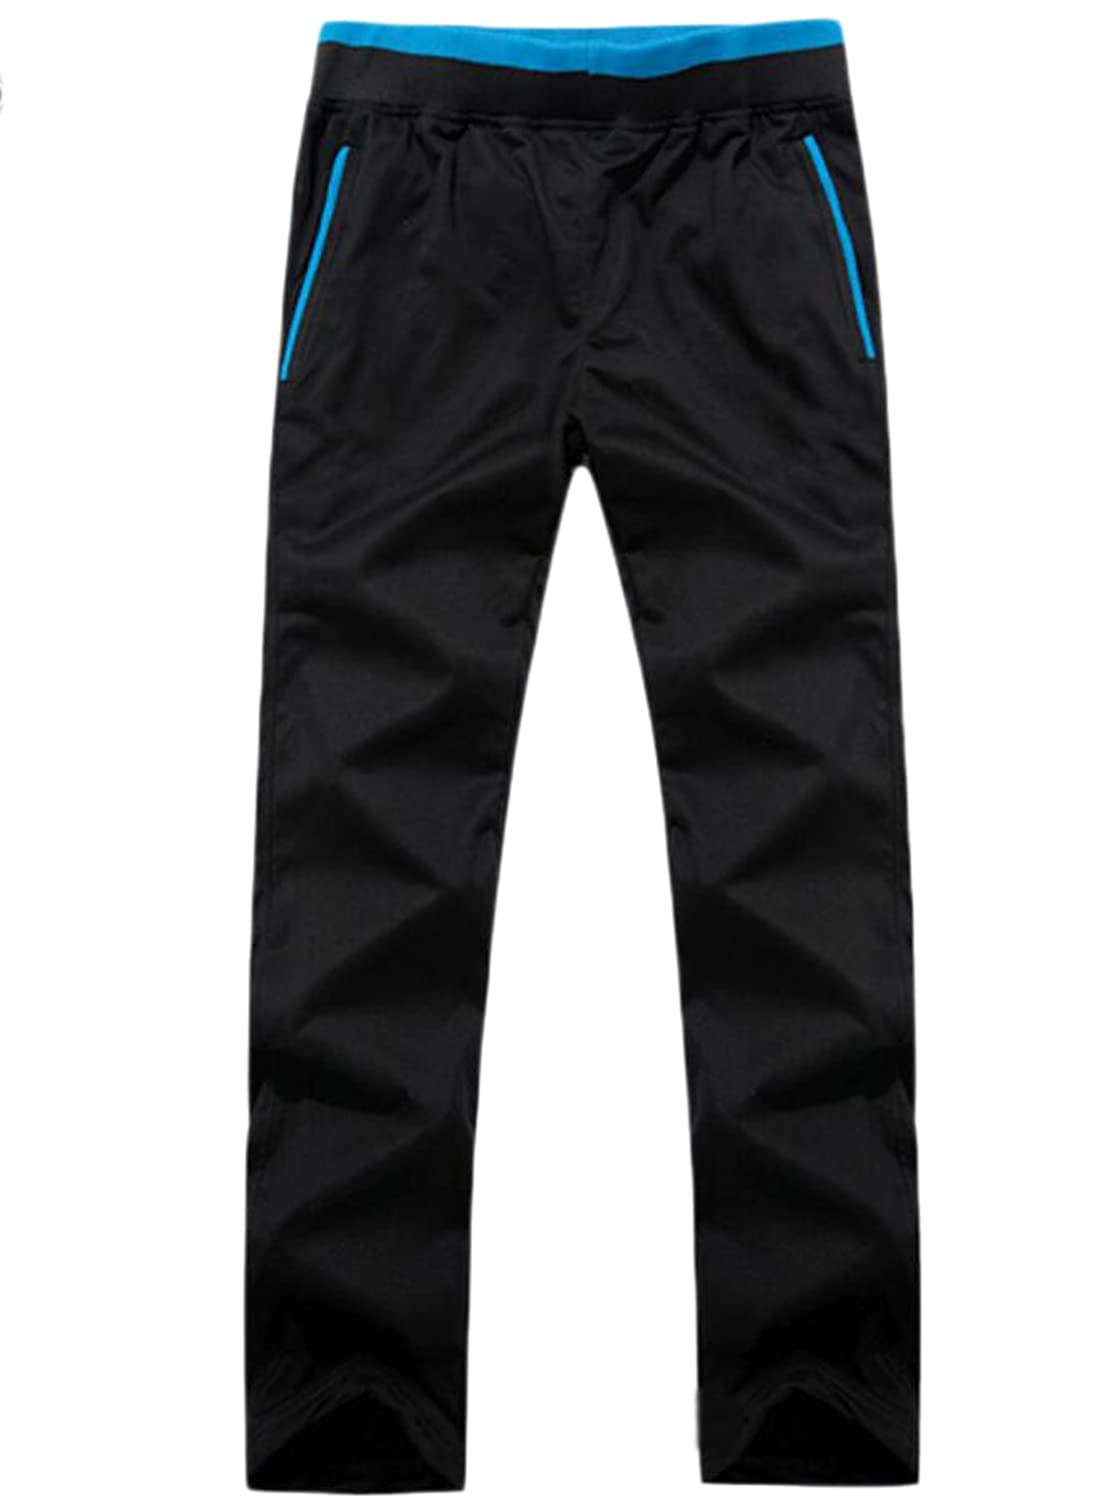 YUNY Mens Loose Light Weight Jersey Sweatpant Jogger Trousers Black US XL